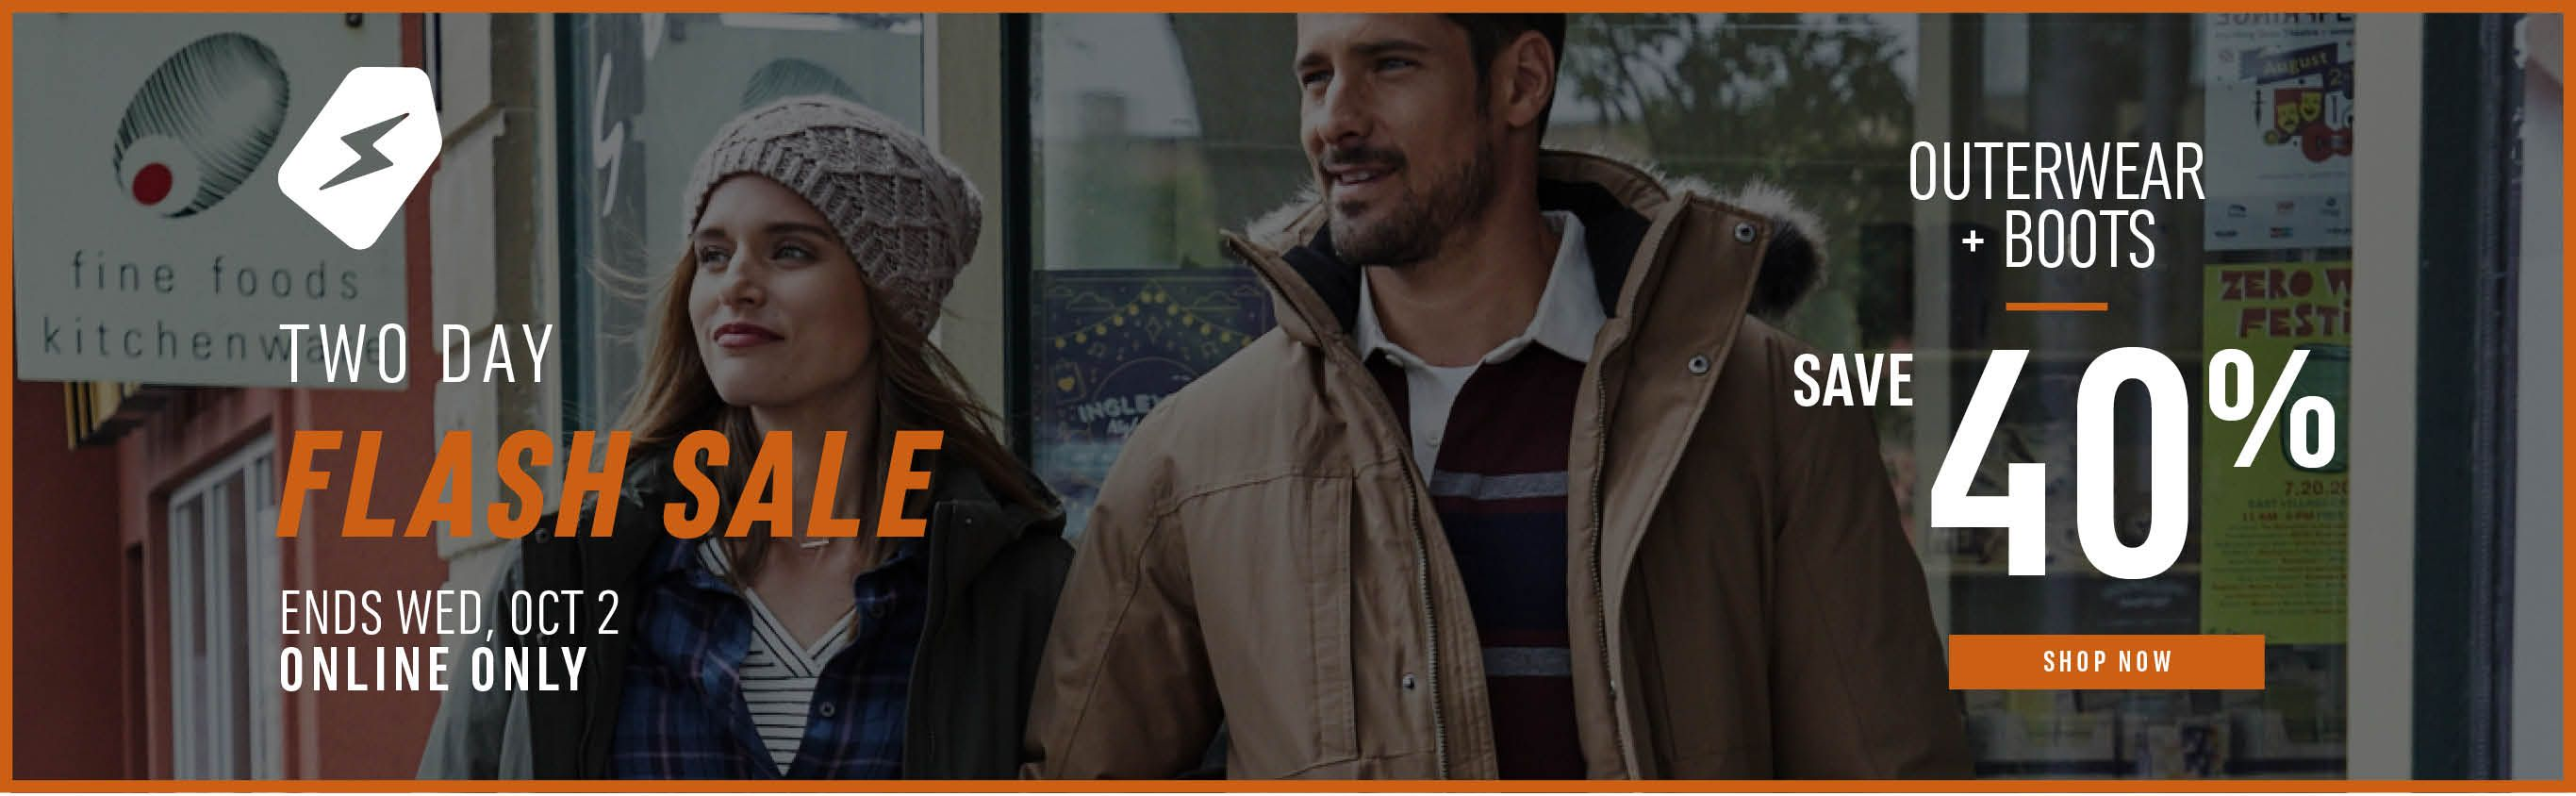 Mark's Canada Online Flash Sale: Today, Save 40% off Outerwear & Boots